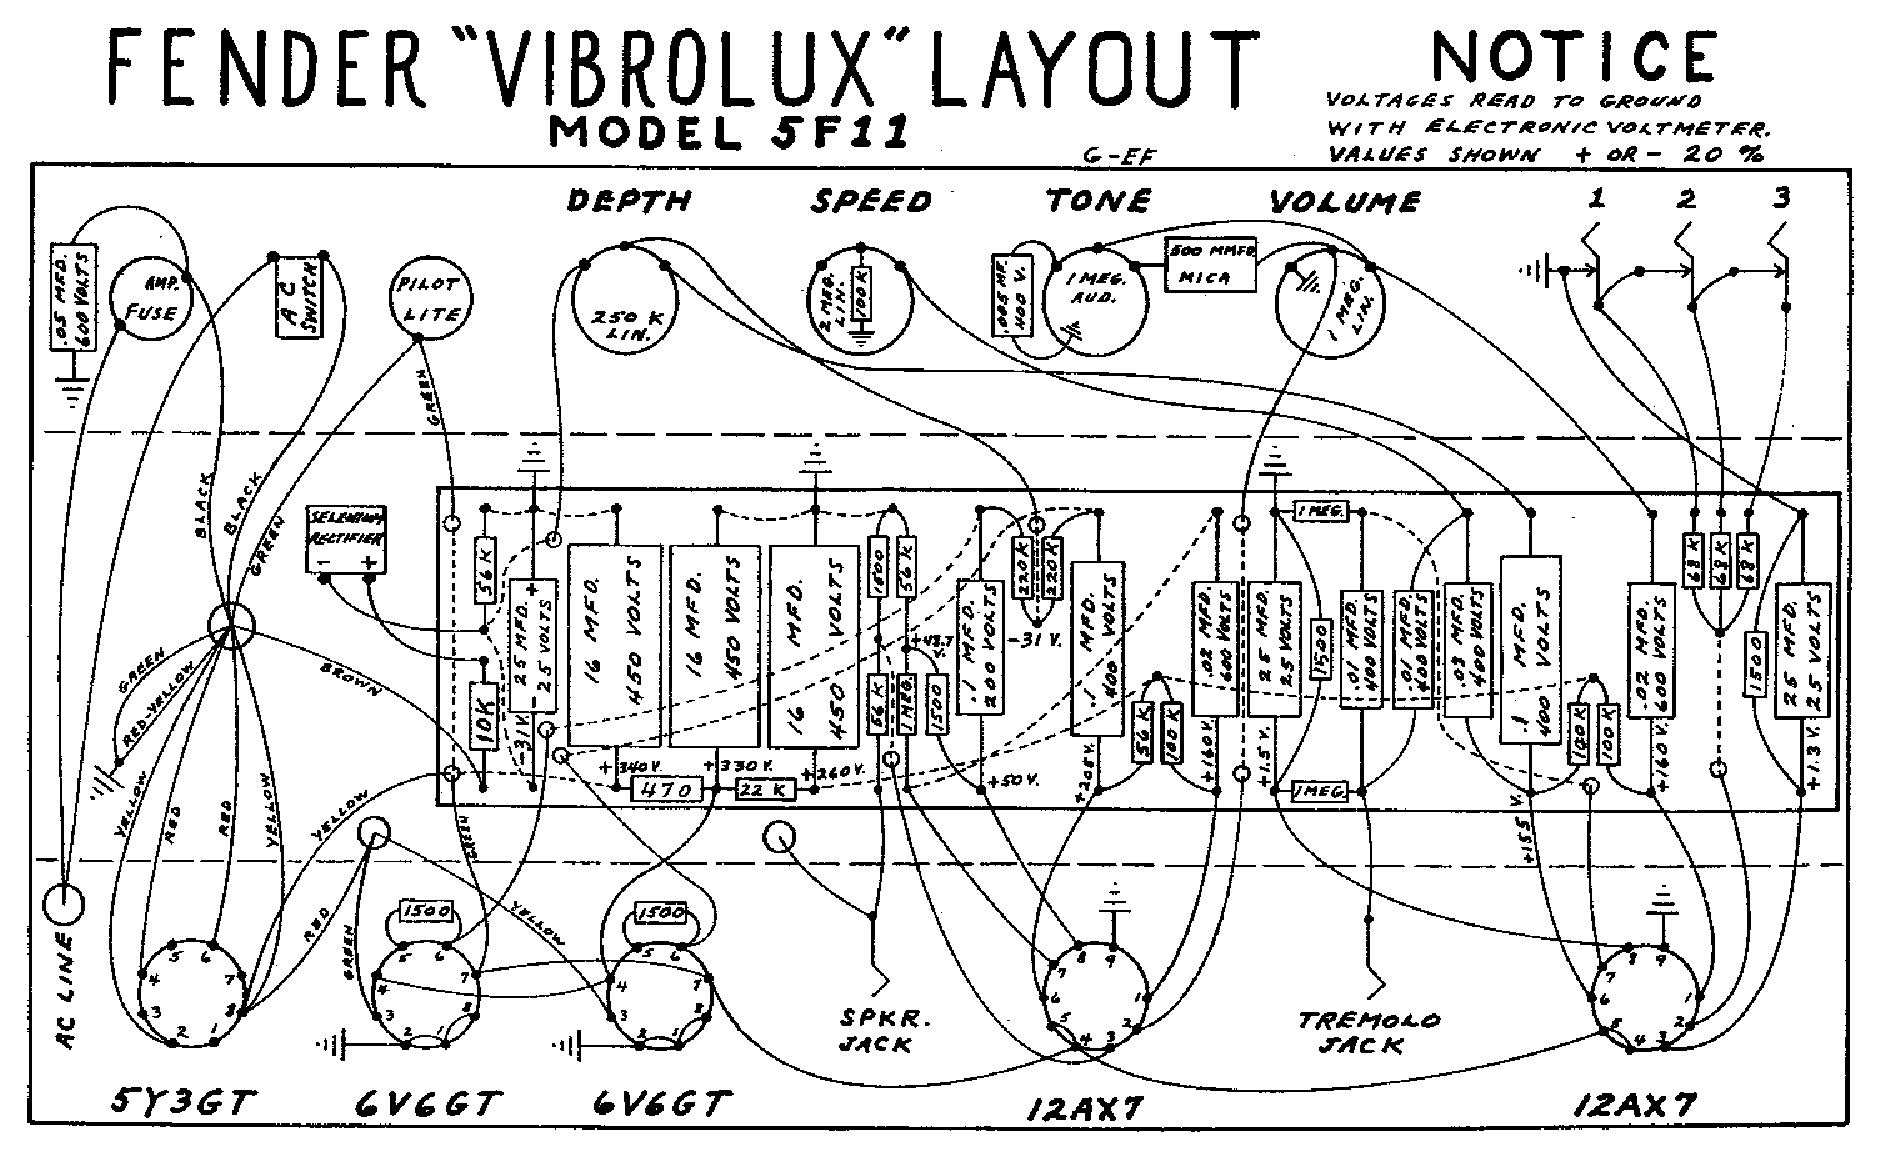 fender_vibrolux 5f11 layout.pdf_1 fender vibrolux 5f11 schematic freestompboxes org view topic add fender 5f11 wiring diagram at bakdesigns.co